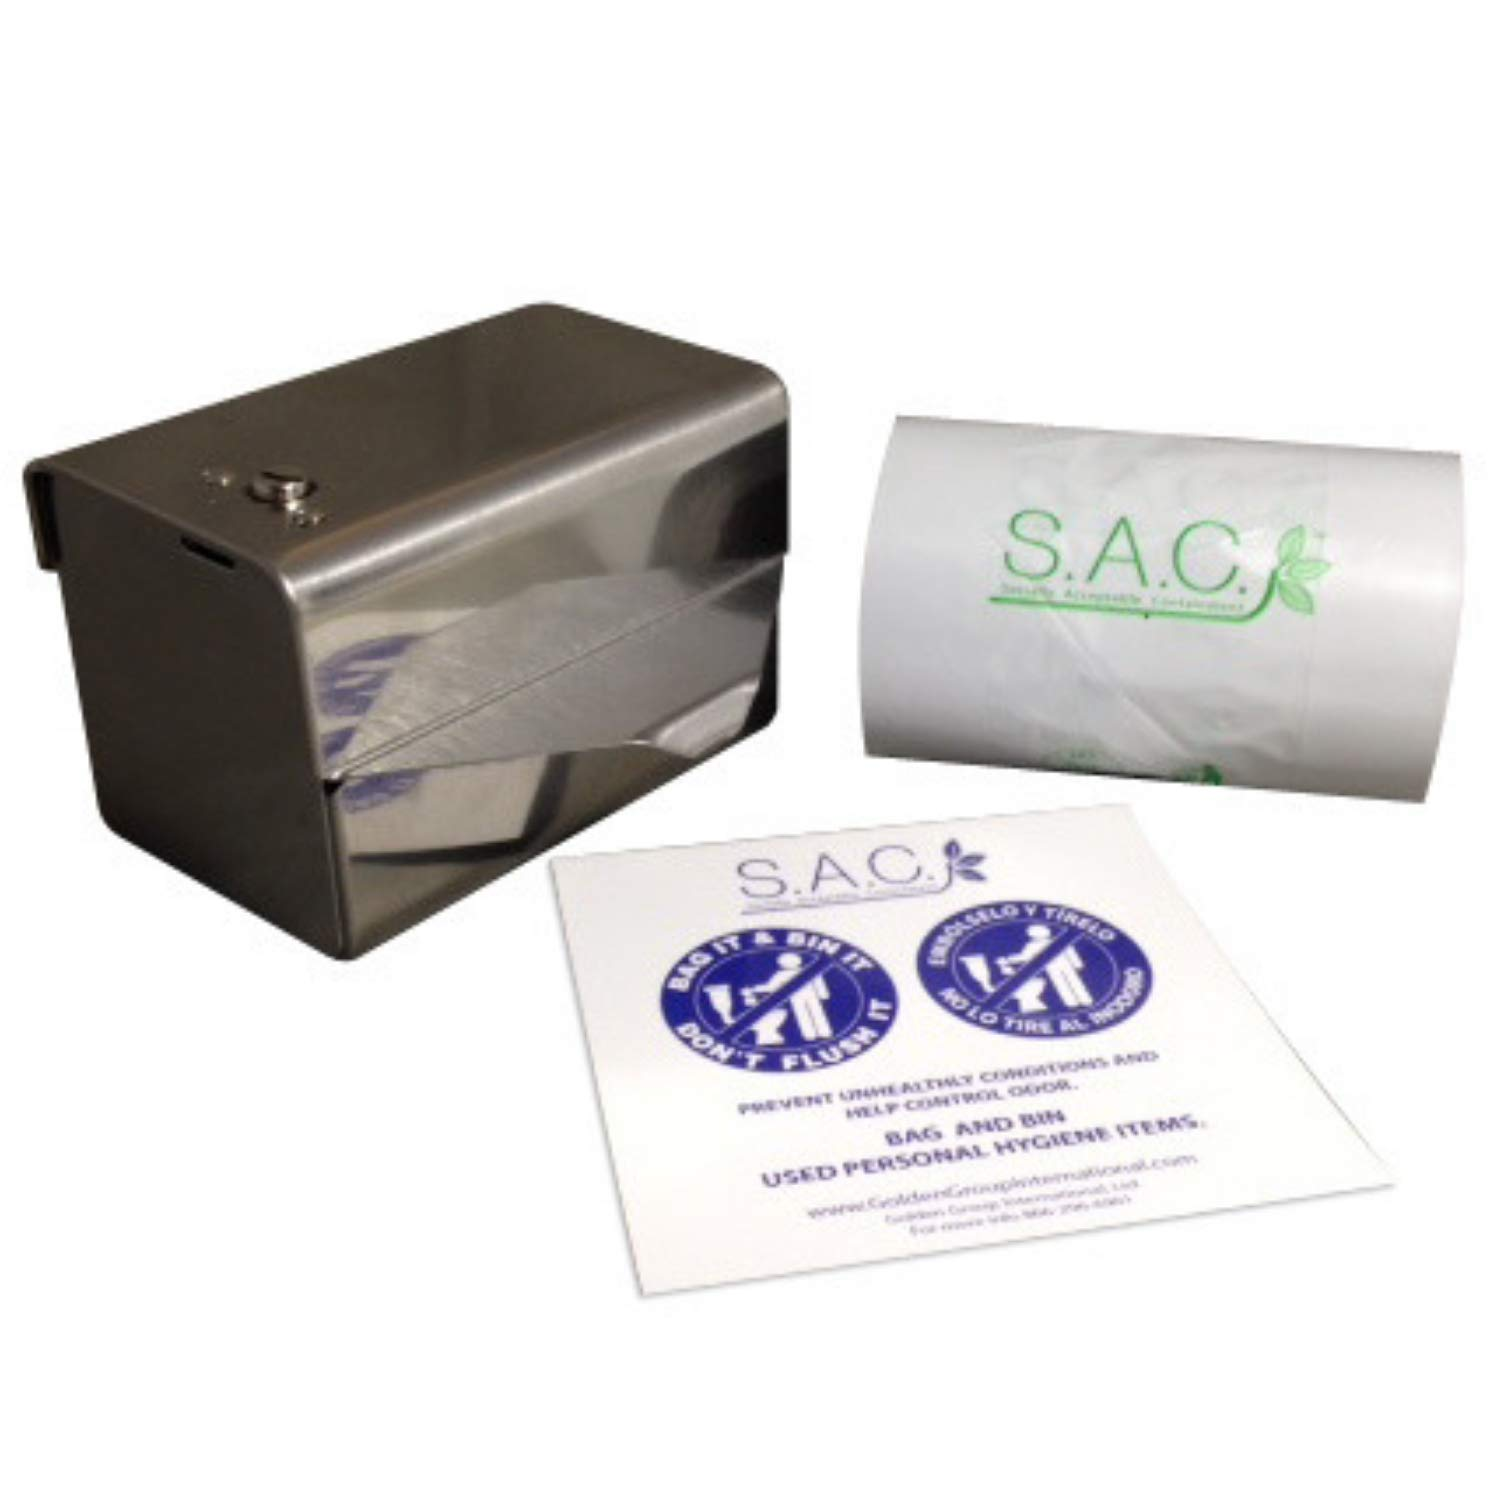 Sanitary Napkin Disposal - Bag Dispenser,1 roll of bags, and a Do Not Flush Sign, included FREE by S.A.C. Socially Acceptable Containment